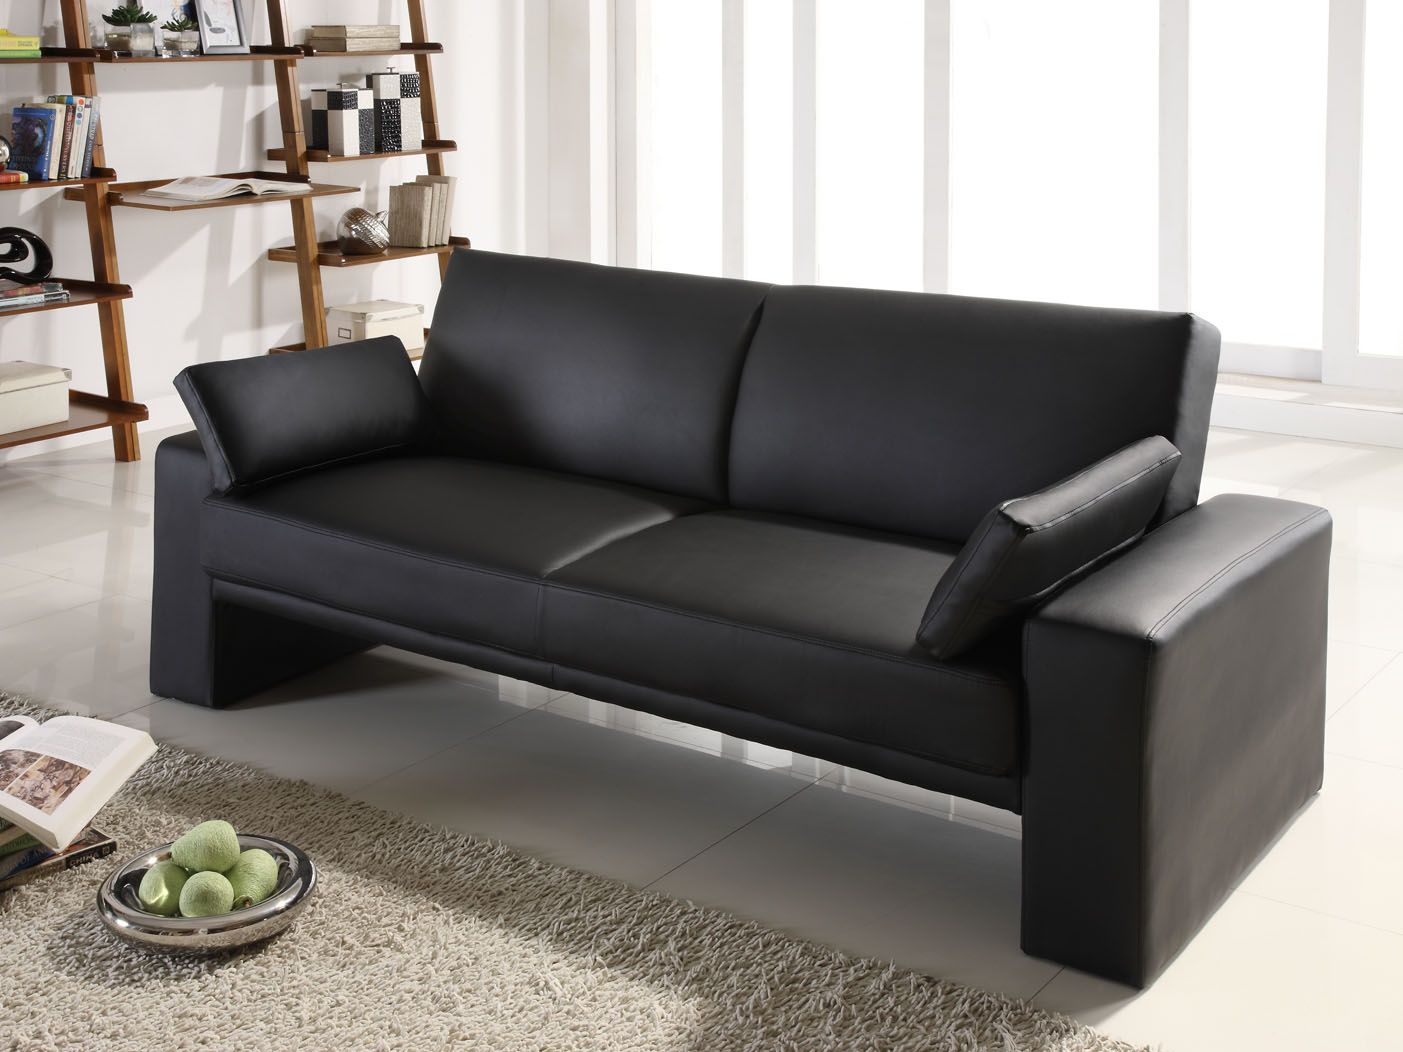 fascinating chesterfield sofa bed floor ceiling living room design | Fancy Black Sofa Designs For Beautiful Living Room ...